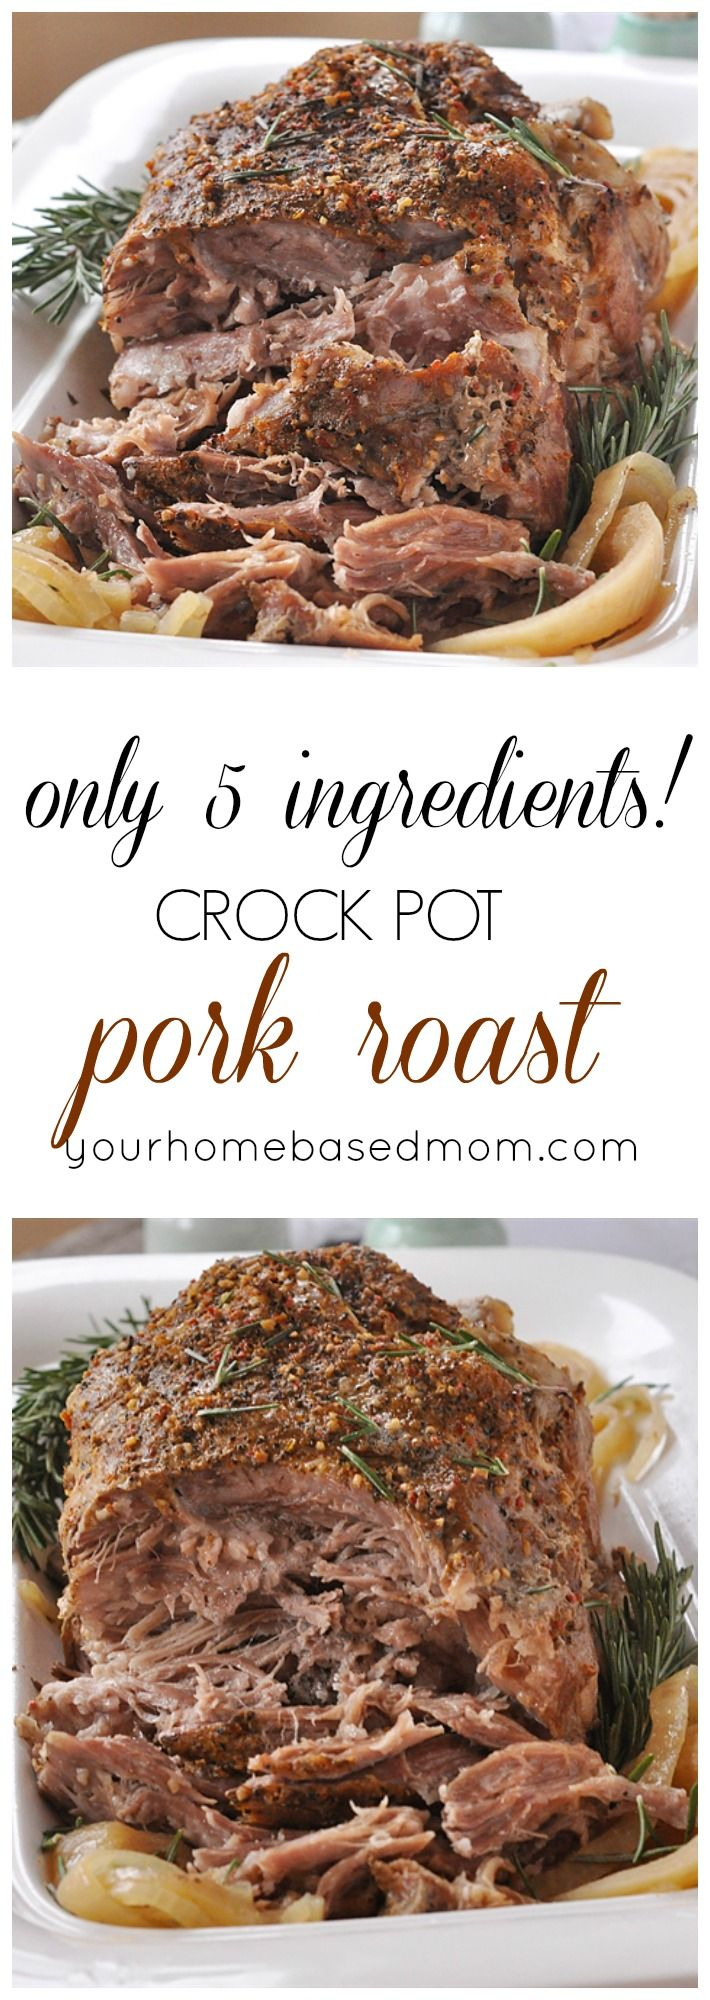 Crock Pot 5 ingredient Pork Roast